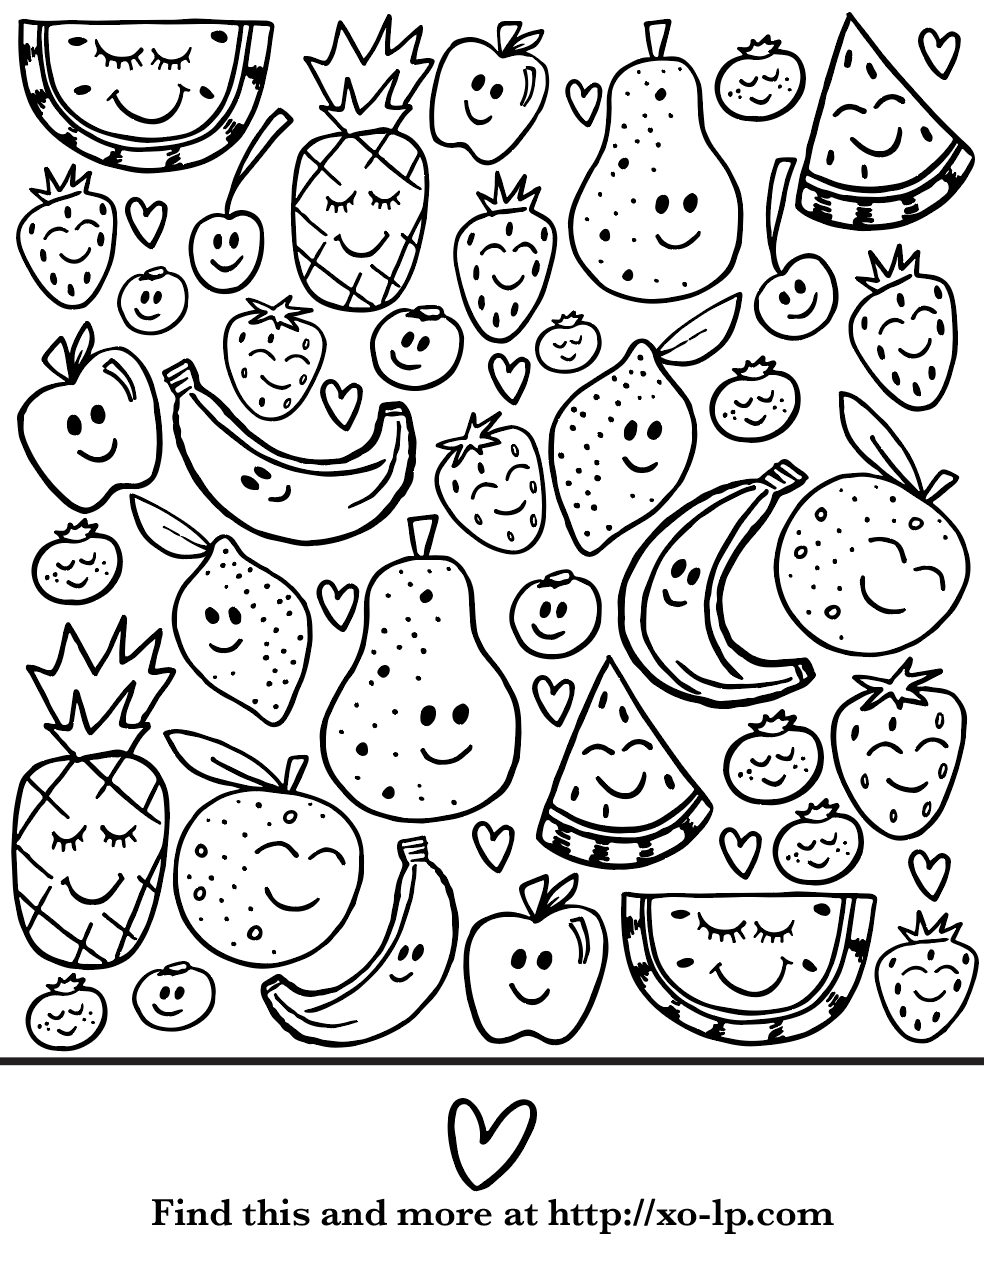 Printable Coloring Pages Perfect For Summer Break Print This Smiley Fruit Page For The Kids To En Fruit Coloring Pages Fall Coloring Pages Food Coloring Pages